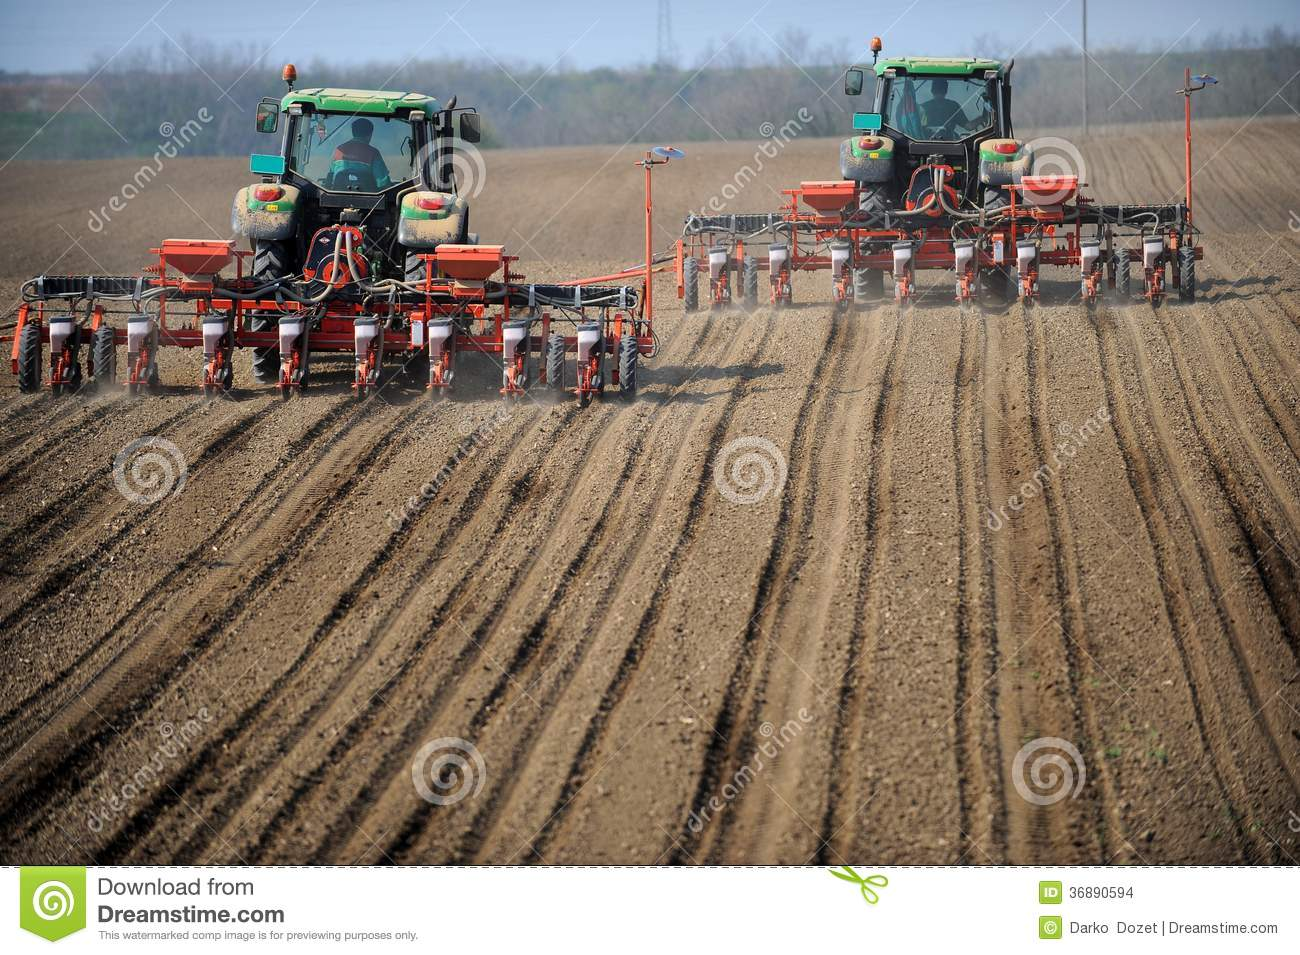 Tractor In Field Planting : Farm tractors planting field stock images image